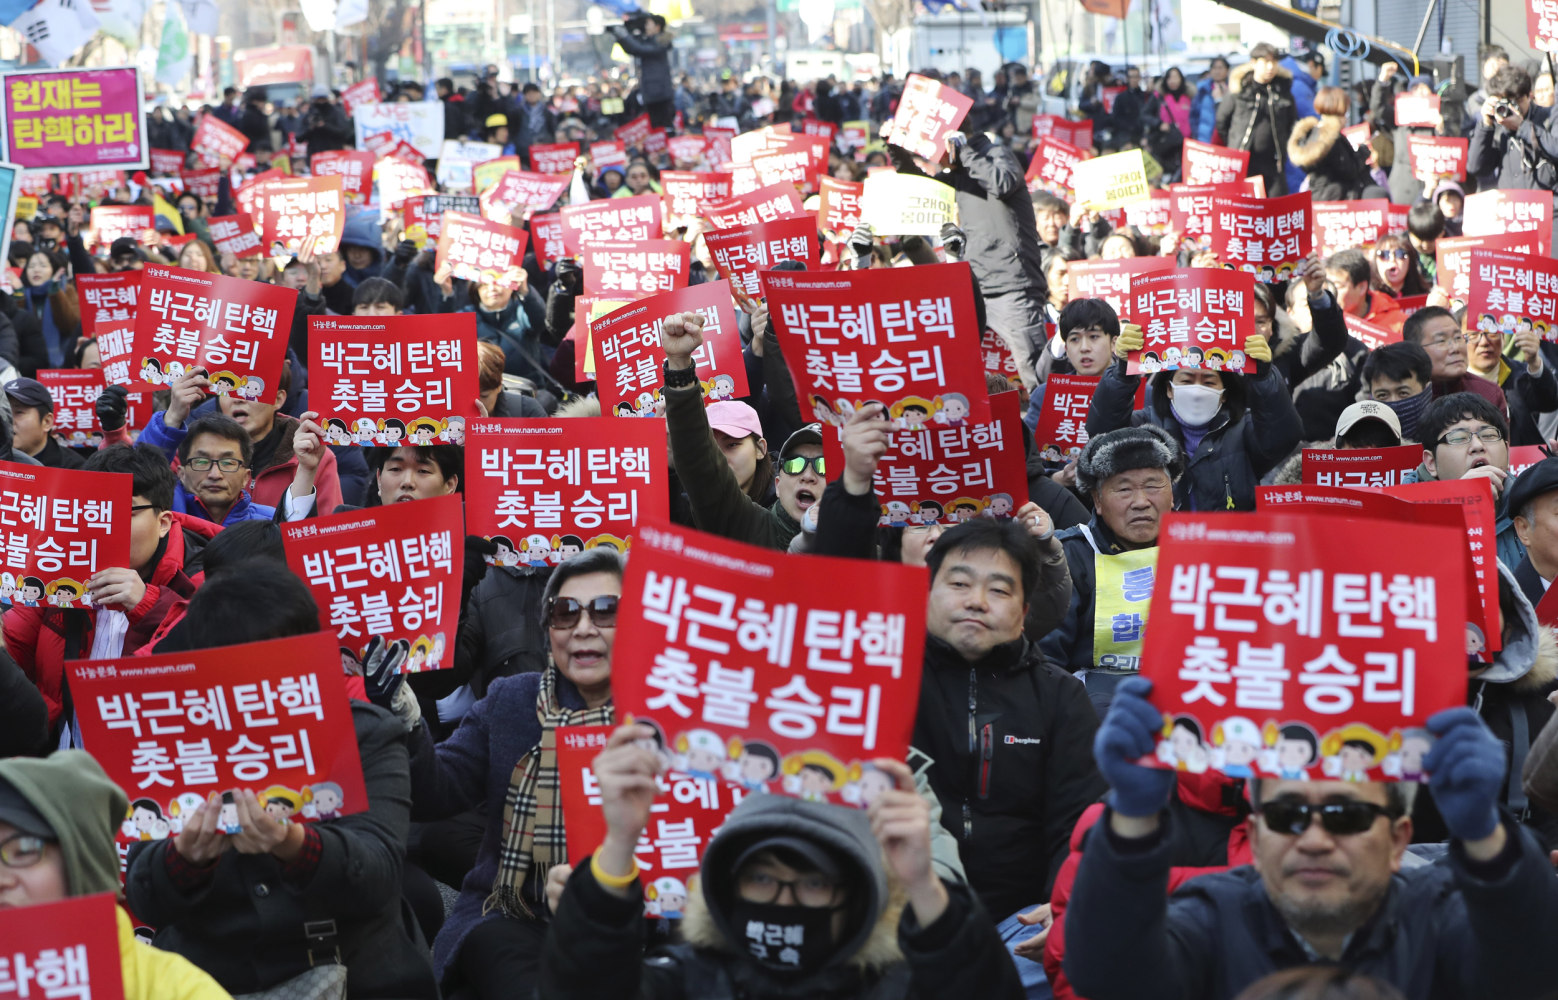 South Korea's Park Geun-hye ousted from presidency, triggering vote